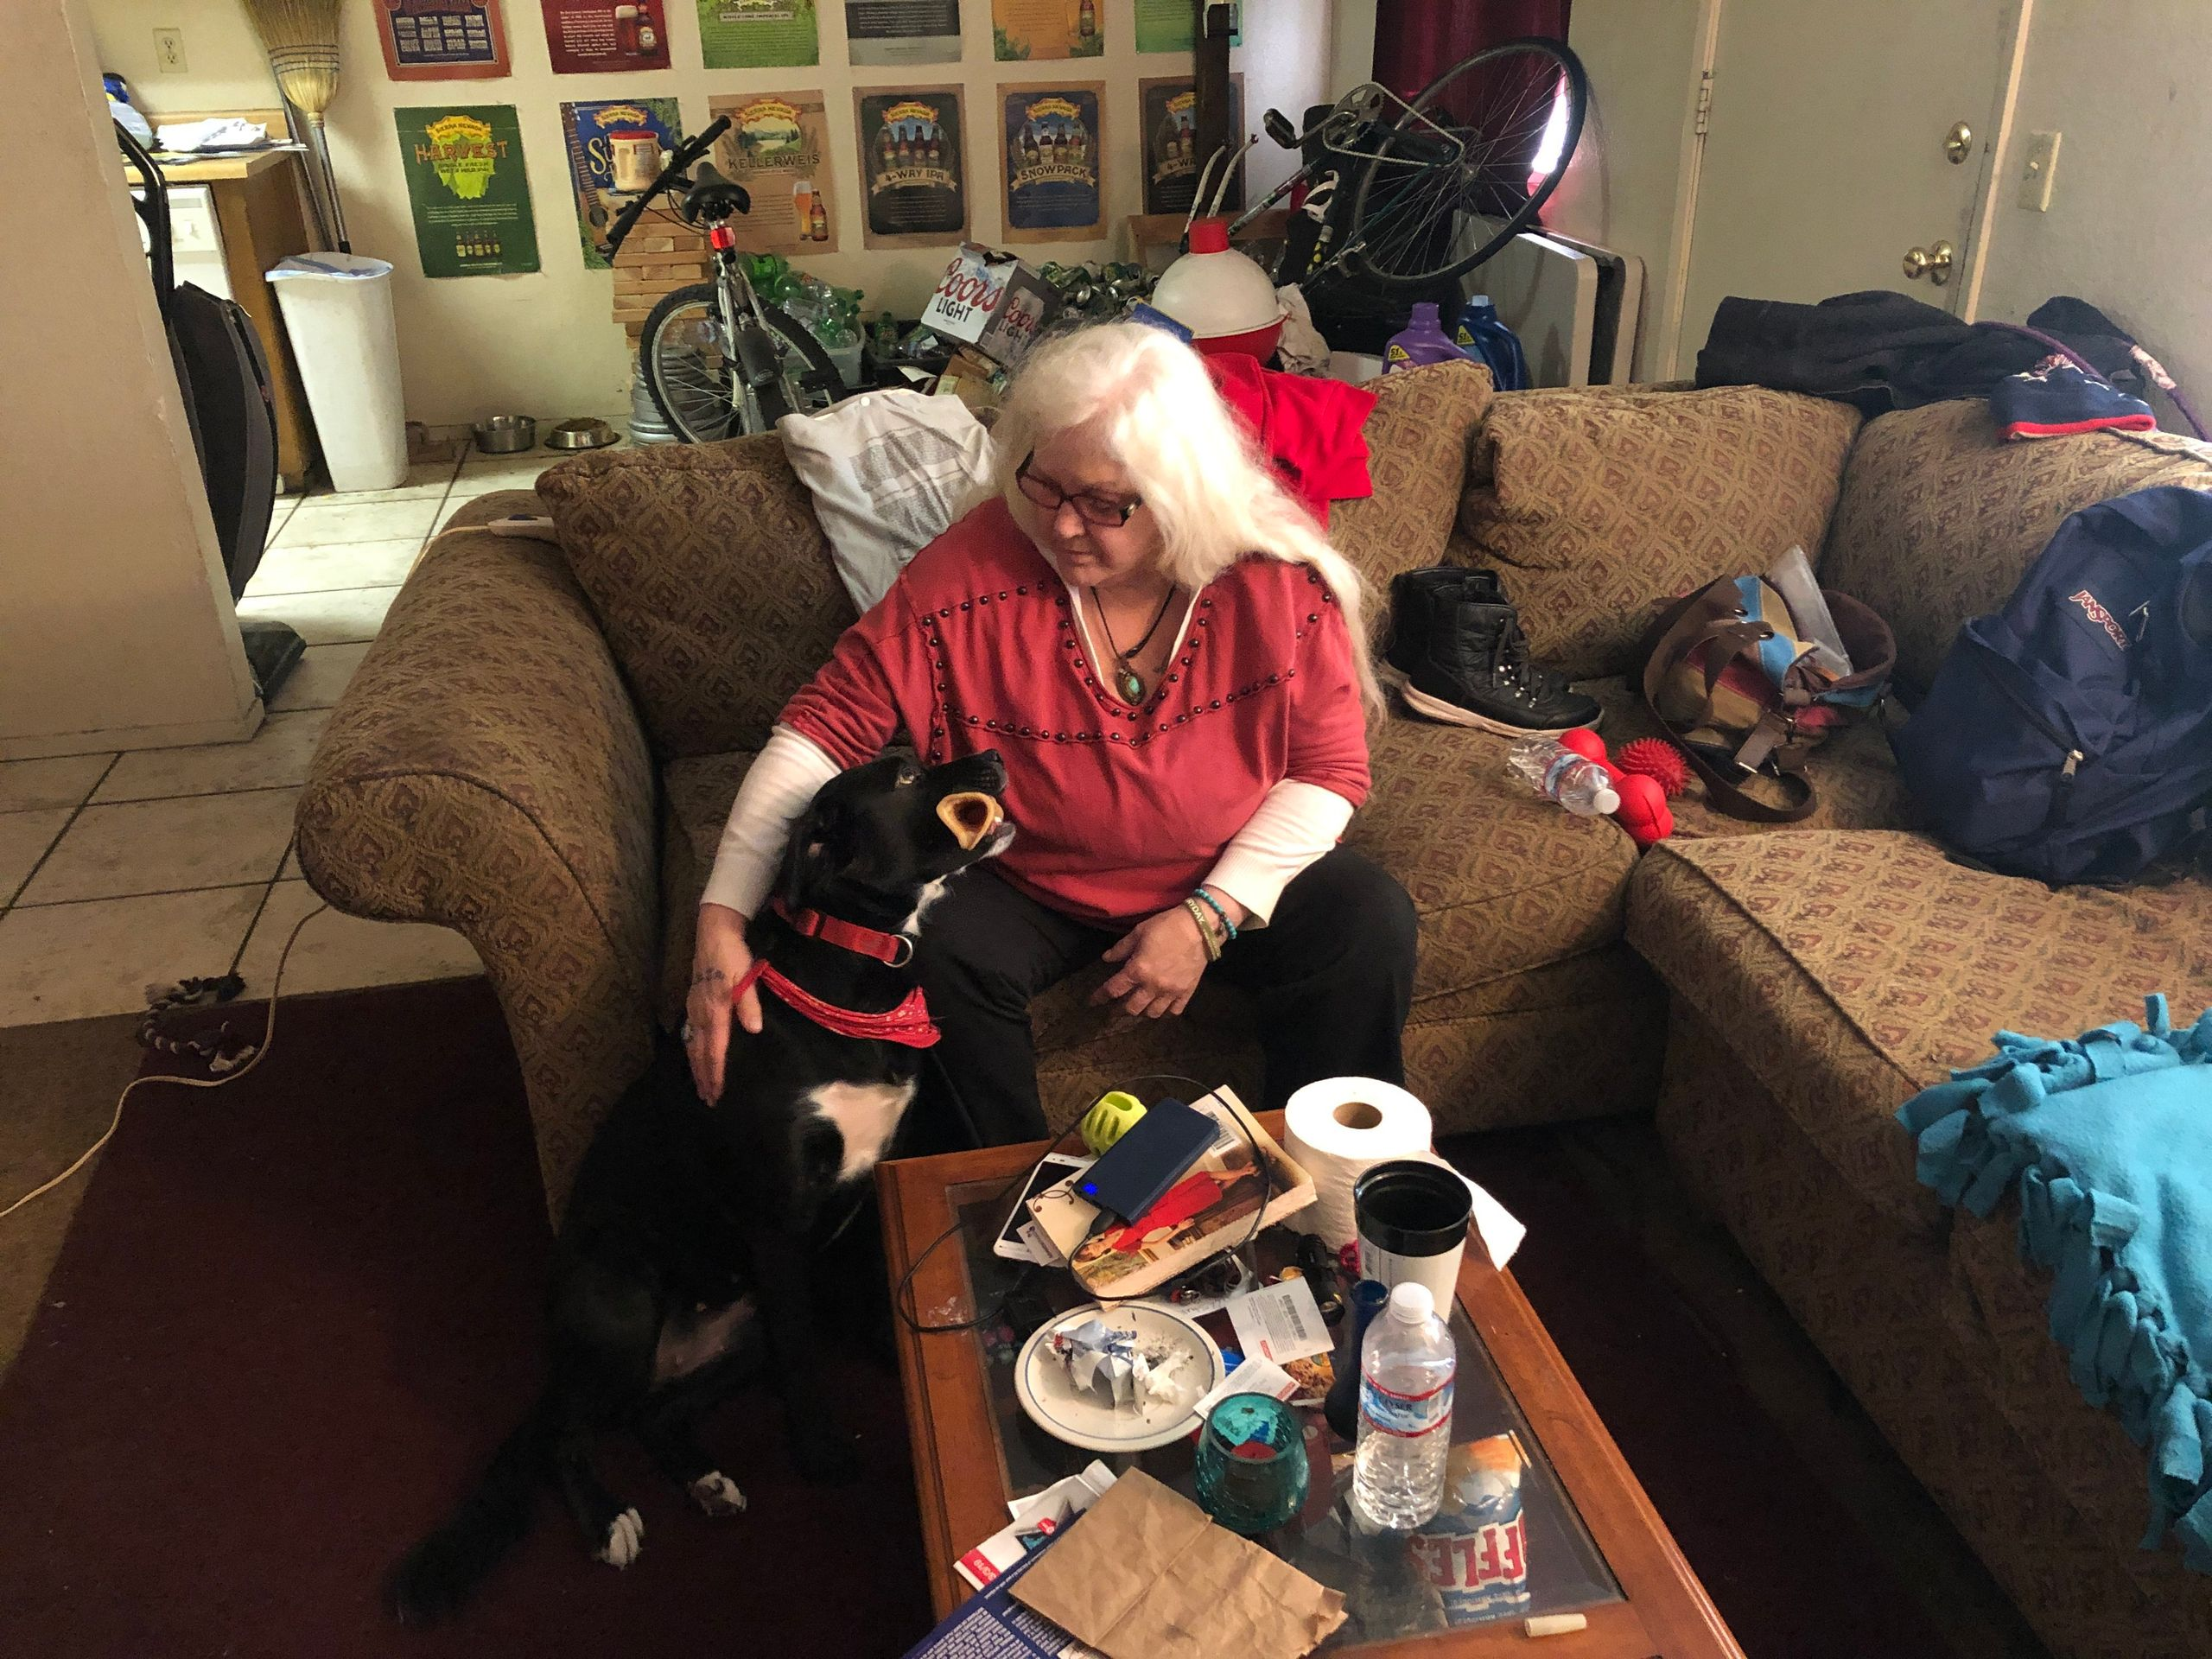 Jill David, with her dog, Ivy, has been sleeping on her son's sofa since losing her home to the Camp fire. — Chico, Cal